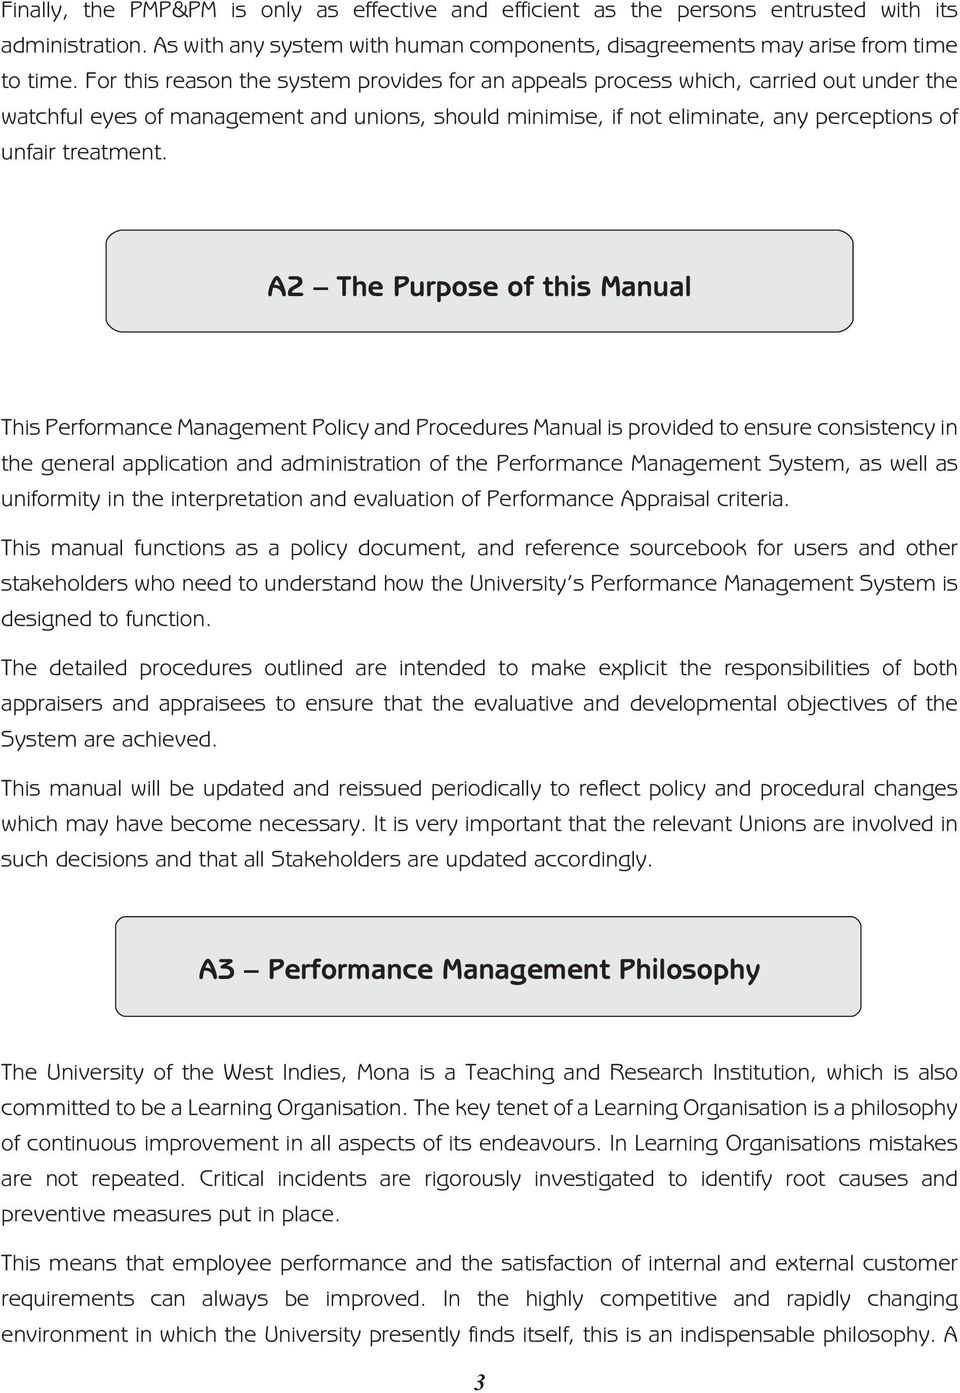 A2 The Purpose of this Manual This Performance Management Policy and Procedures Manual is provided to ensure consistency in the general application and administration of the Performance Management